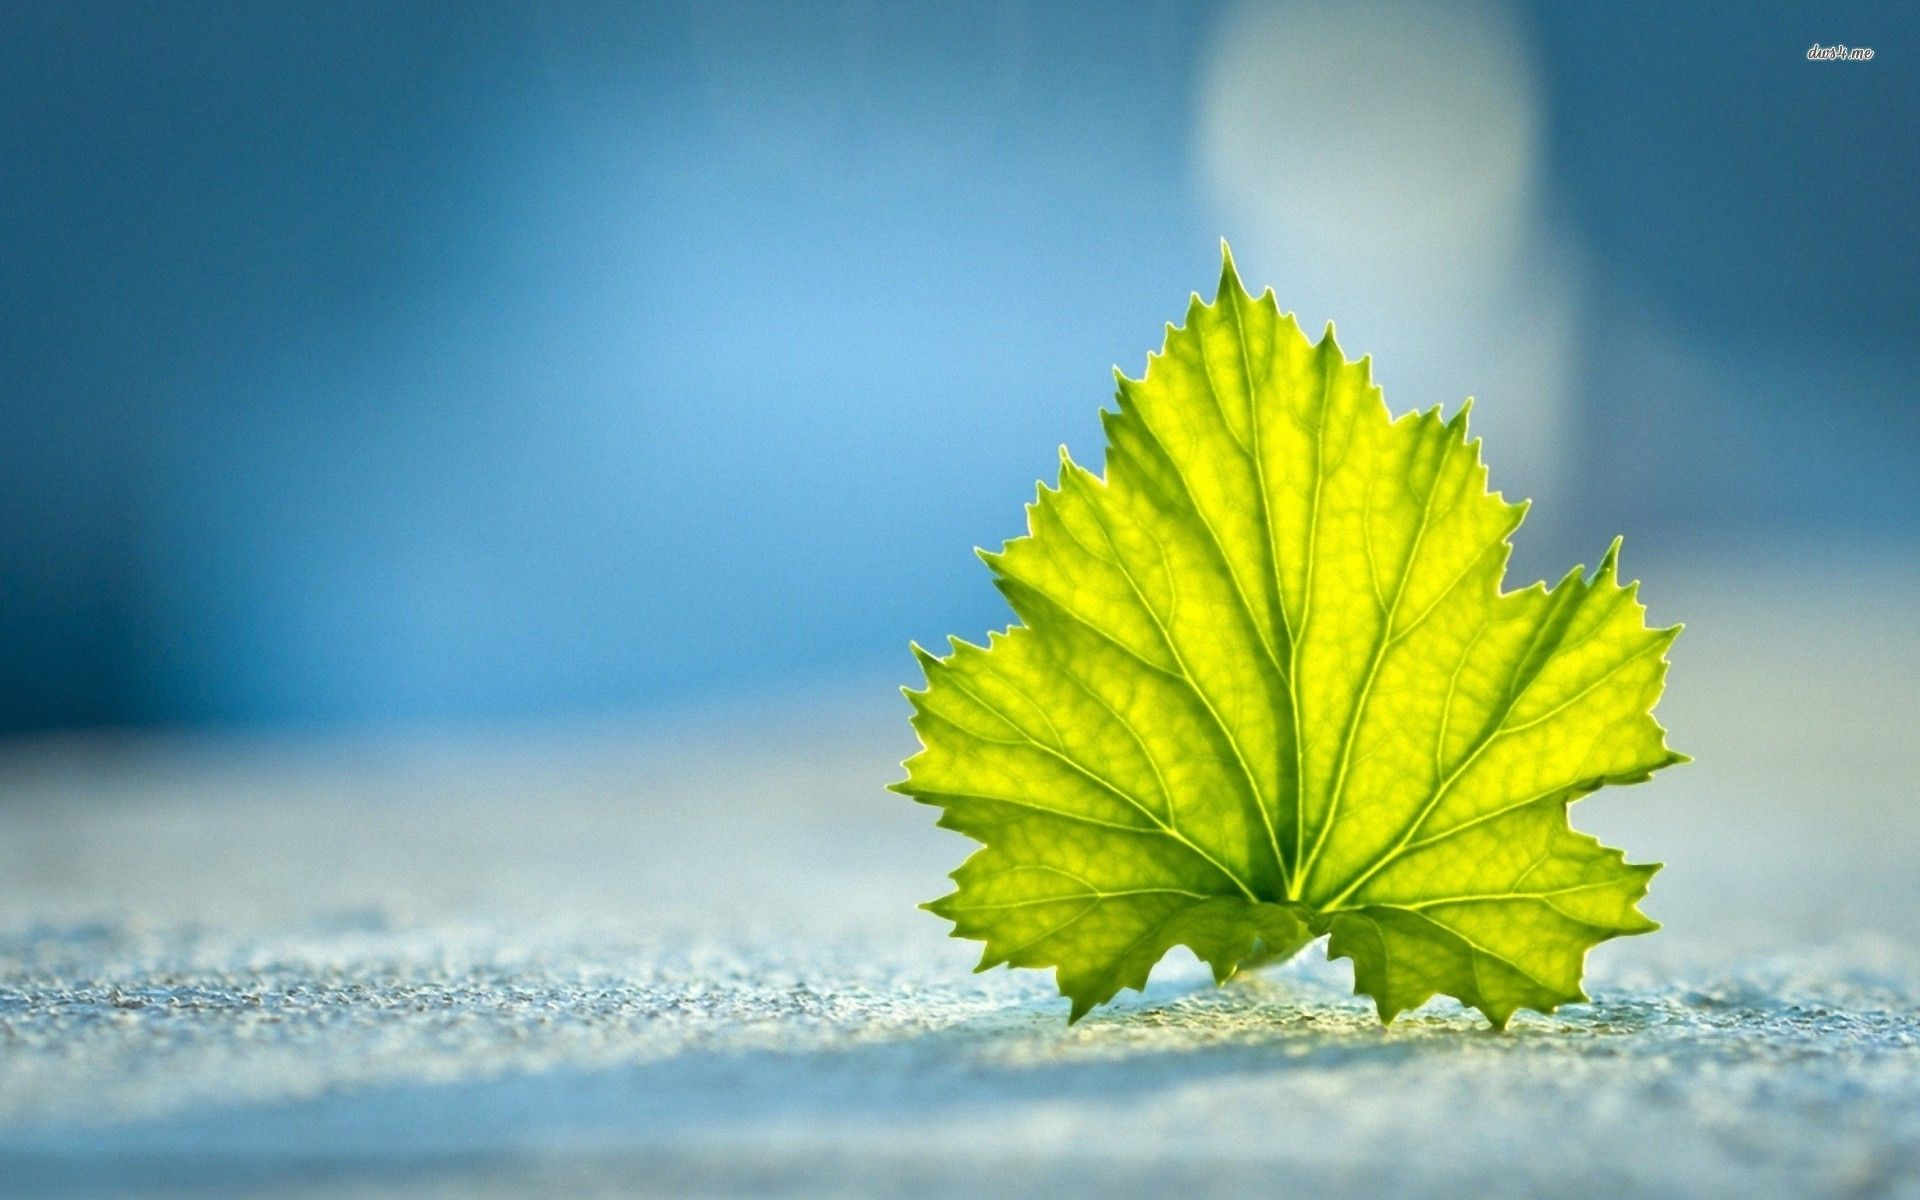 Fallen Grape Leaf Hd Wallpaper Nature Desktop Wallpaper Hd Cool